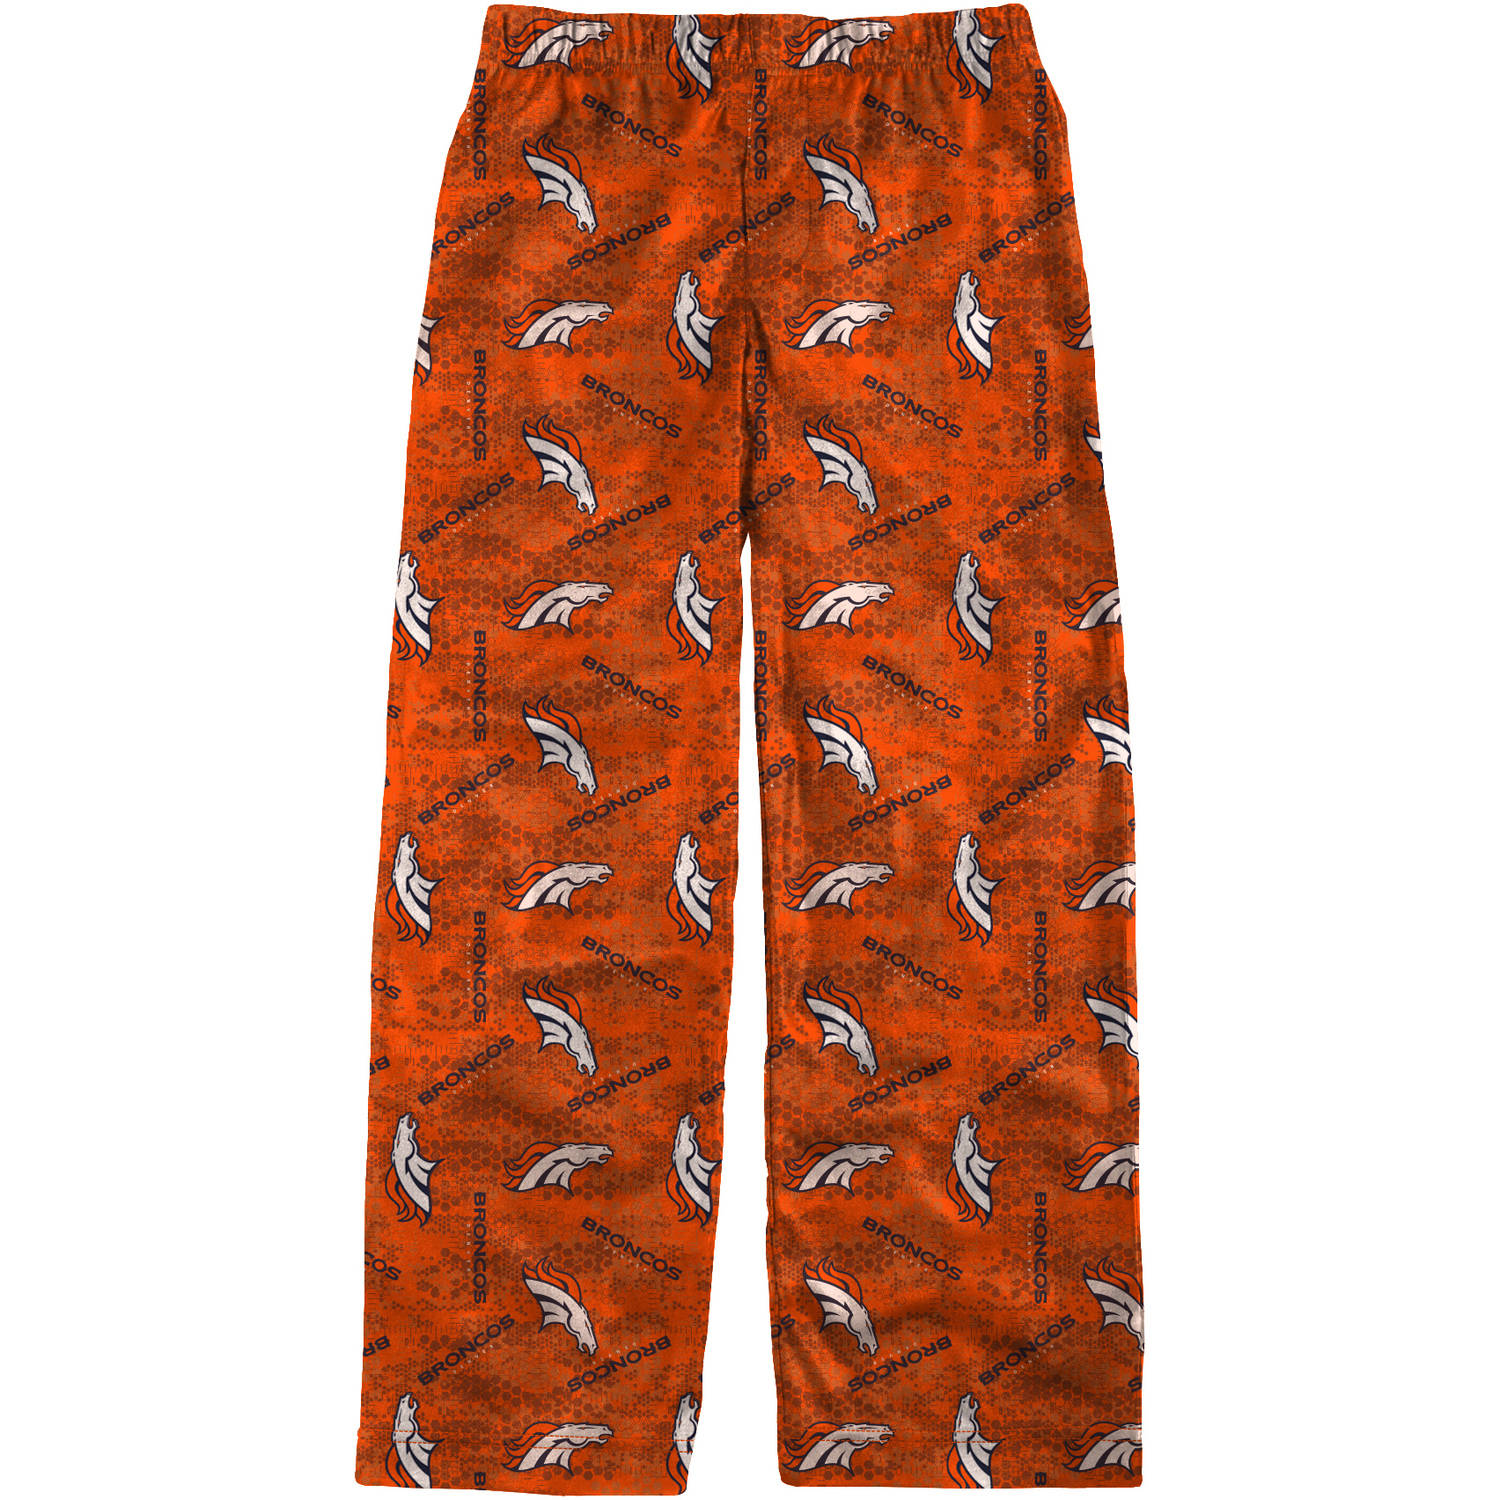 NFL Denver Broncos Youth Lounge Pant